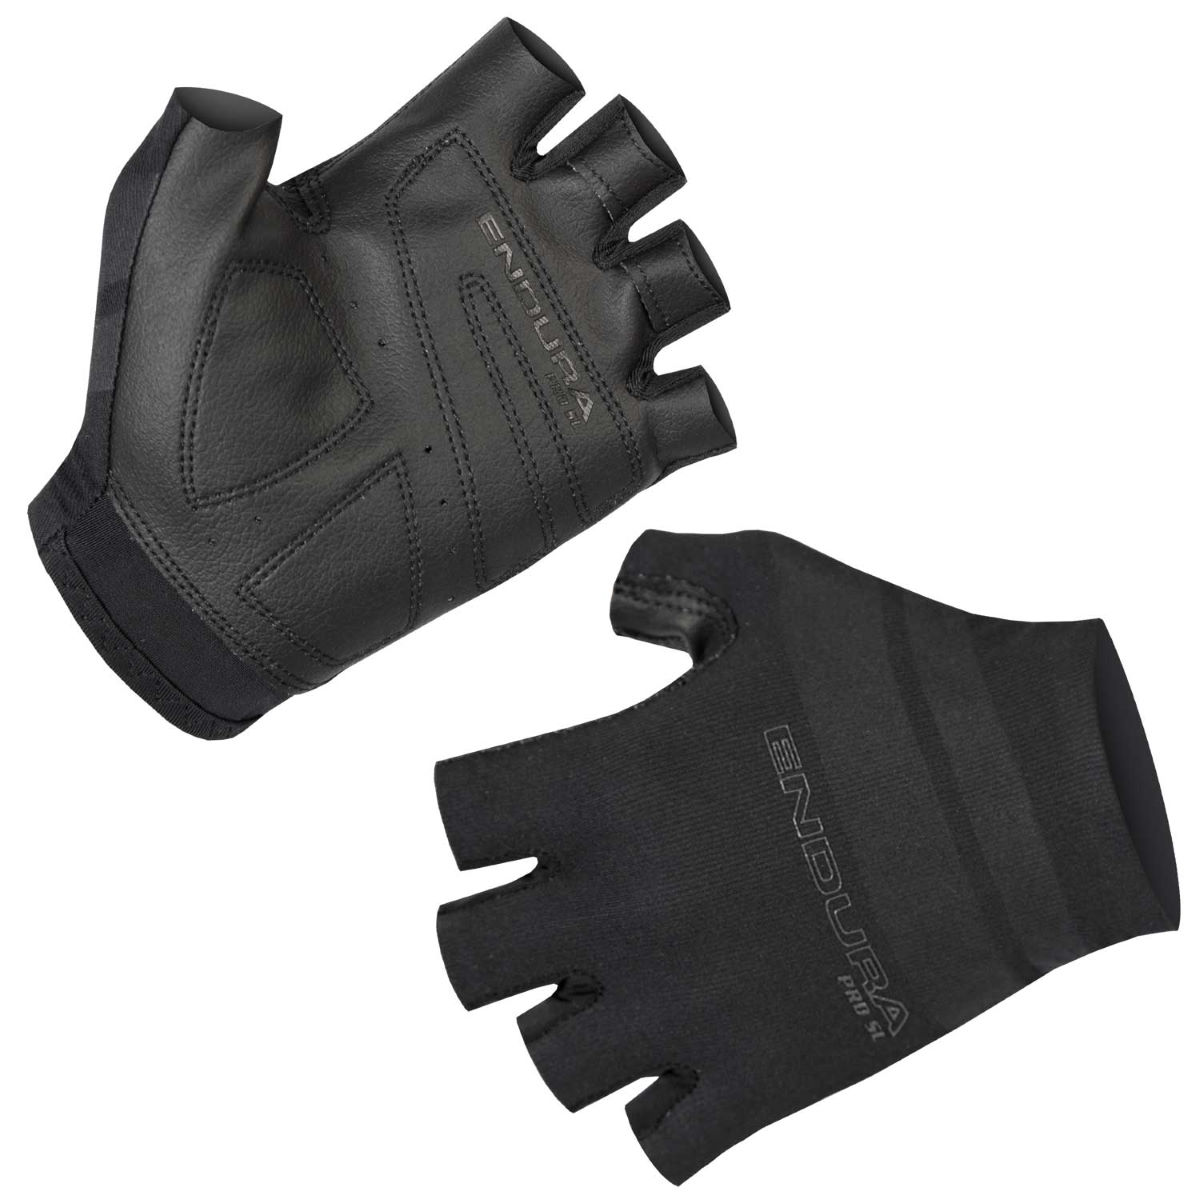 Endura Pro SL Mitts - XL Black | Gloves